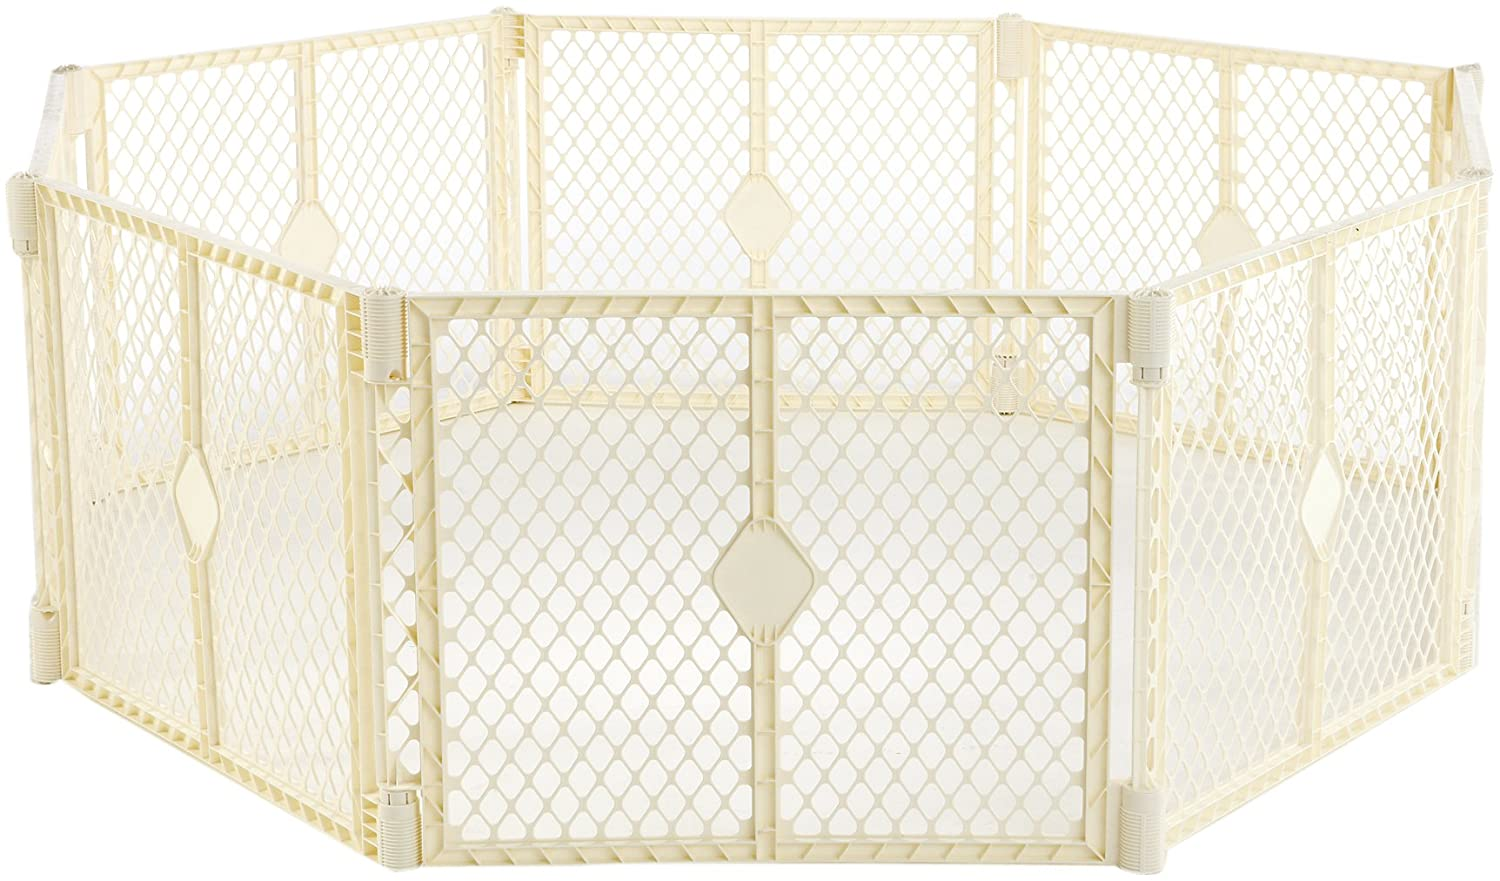 North States Industries Superyard Classic Play Yard, Ivory, 8 Panel  (Discontinued by Manufacturer)